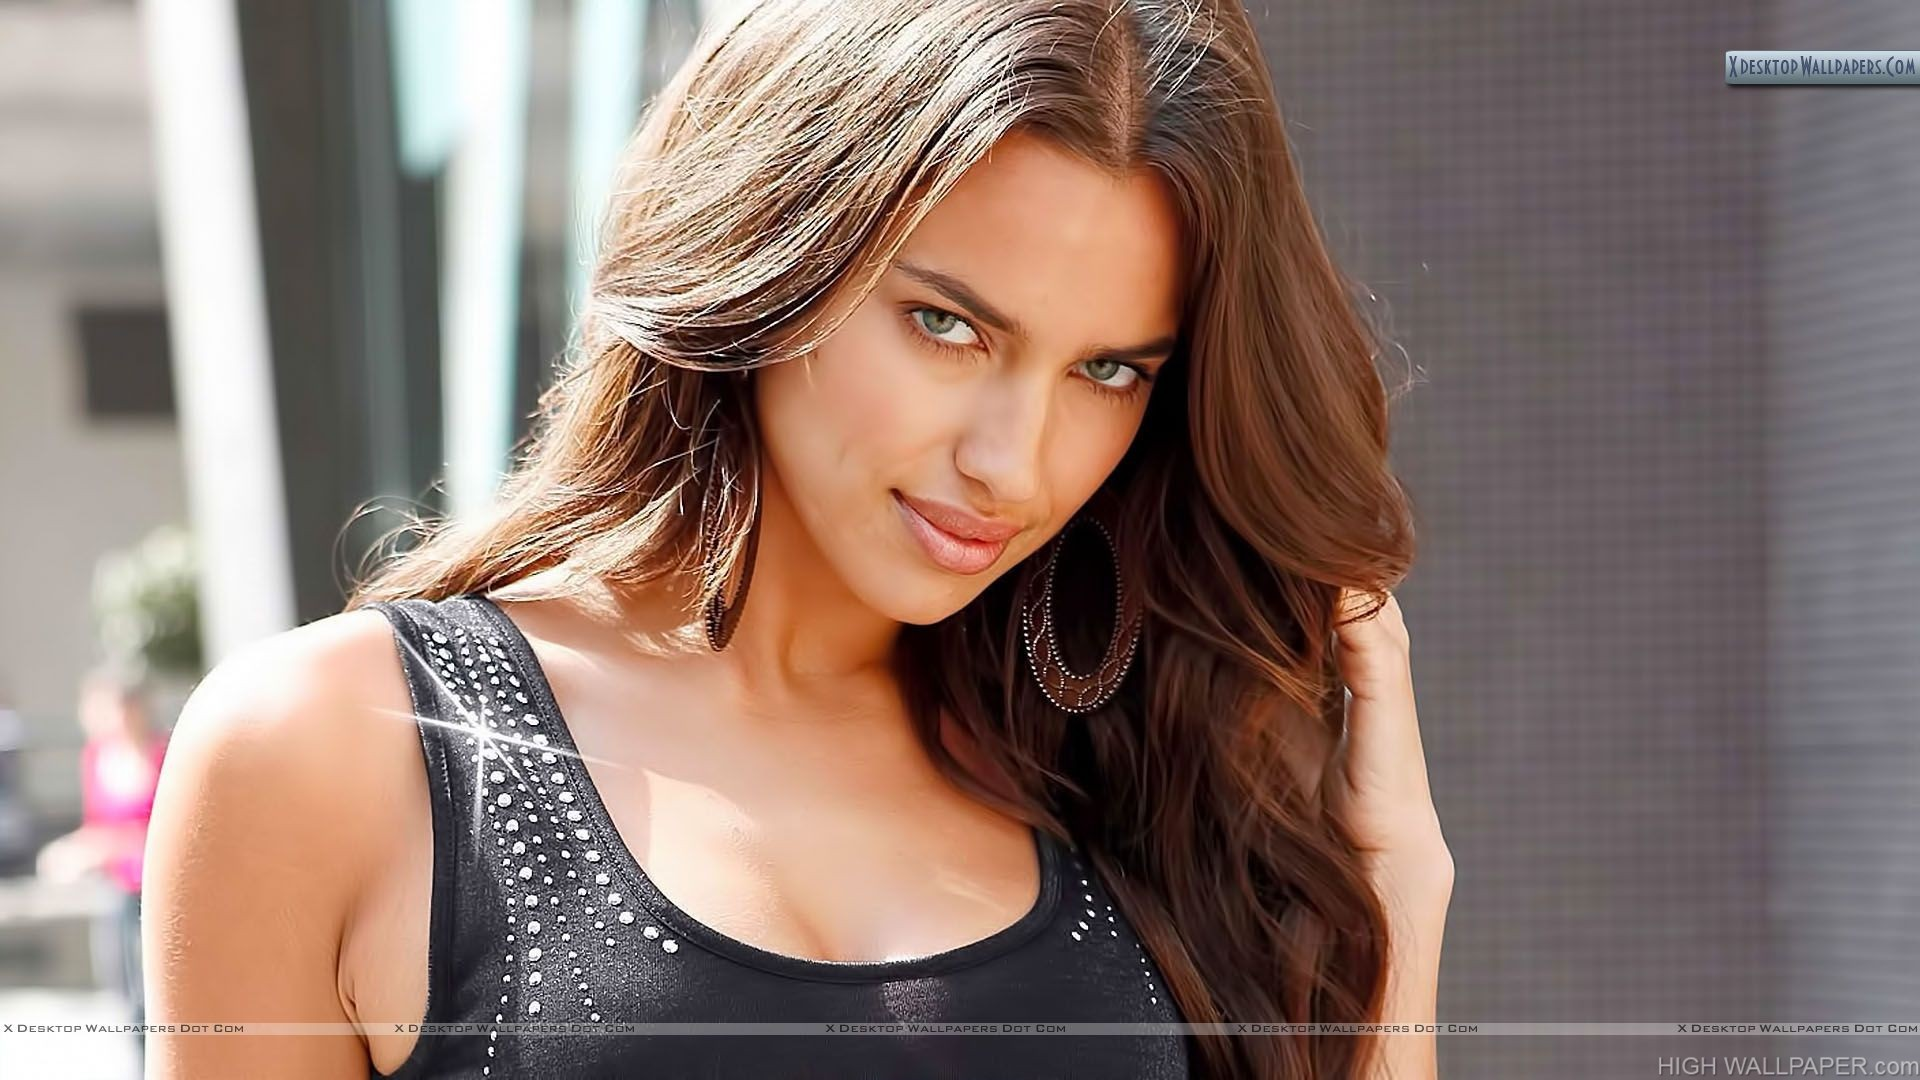 erotic smile of irina shayk hd wallpaper